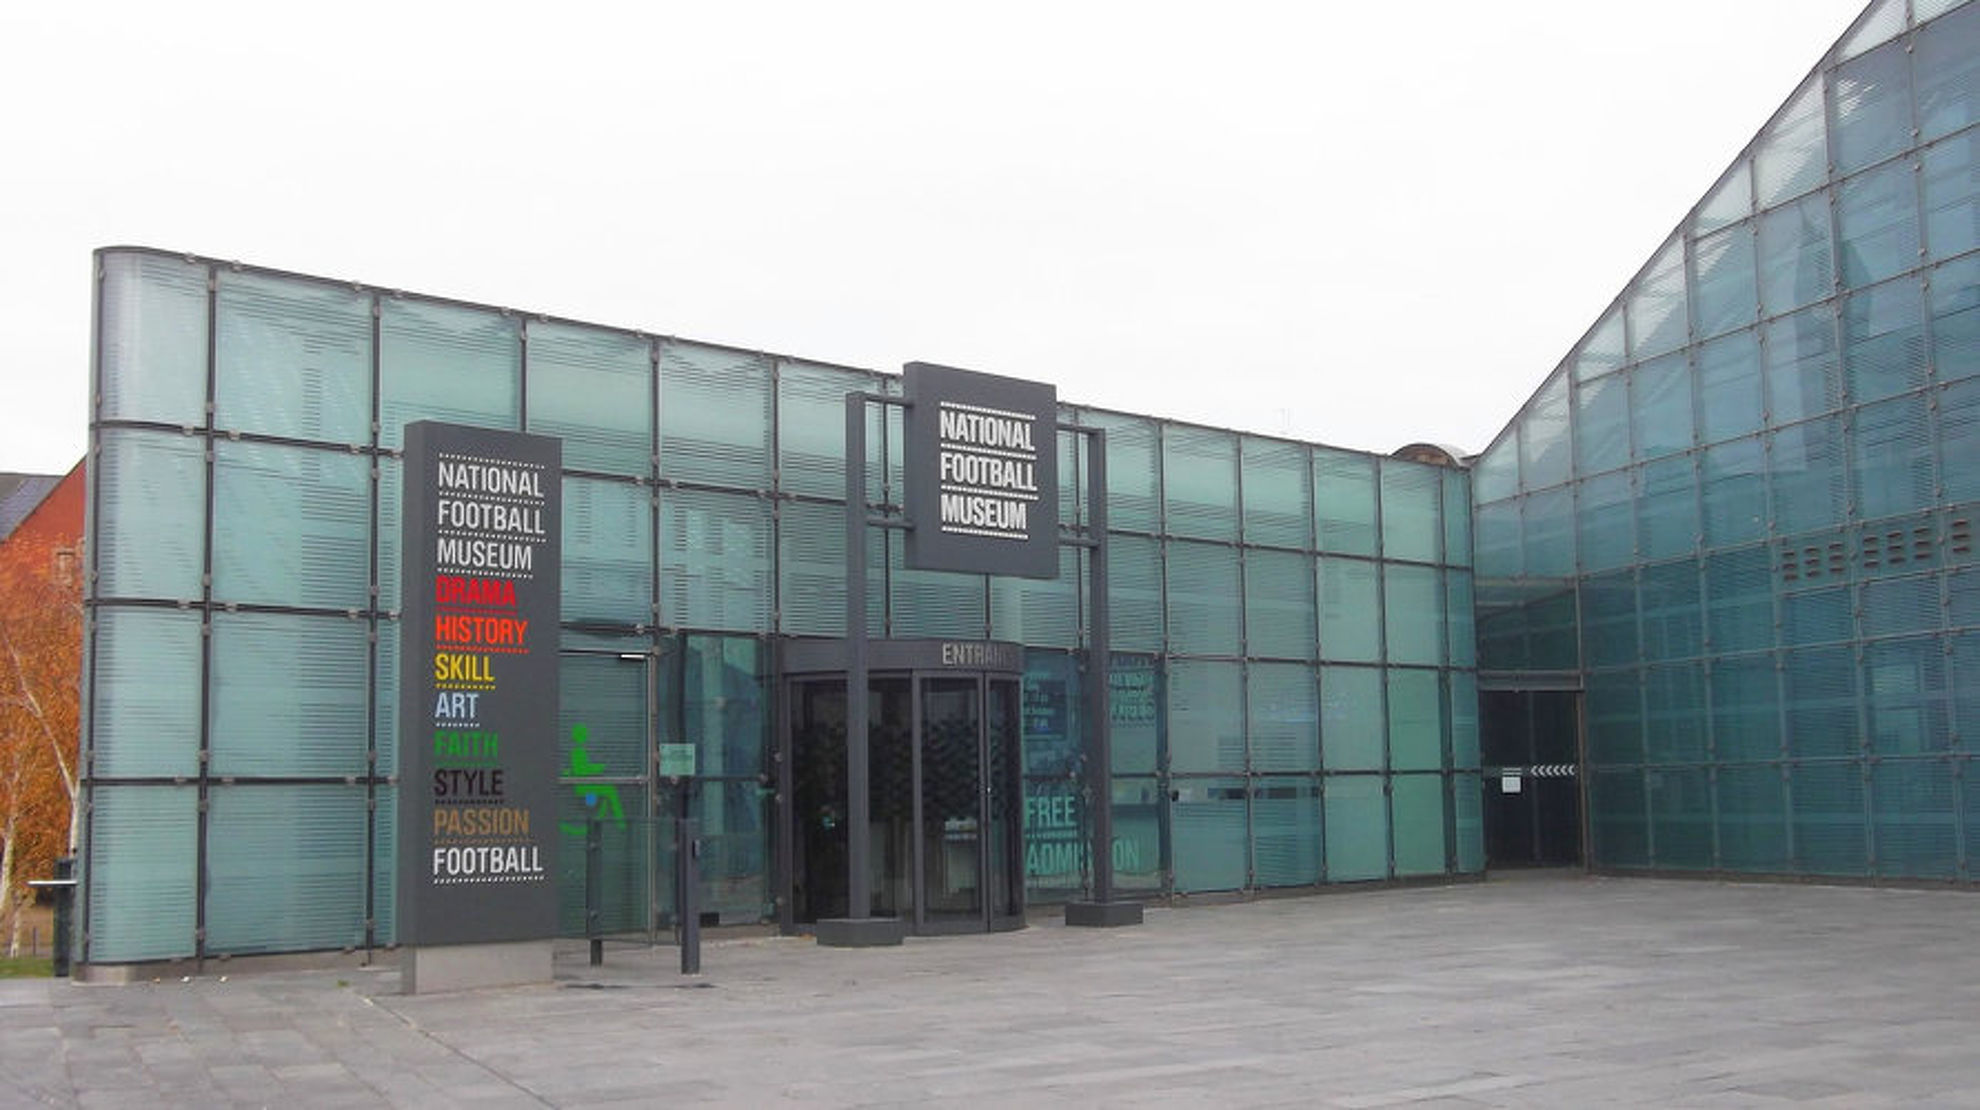 Explore National Football Museum